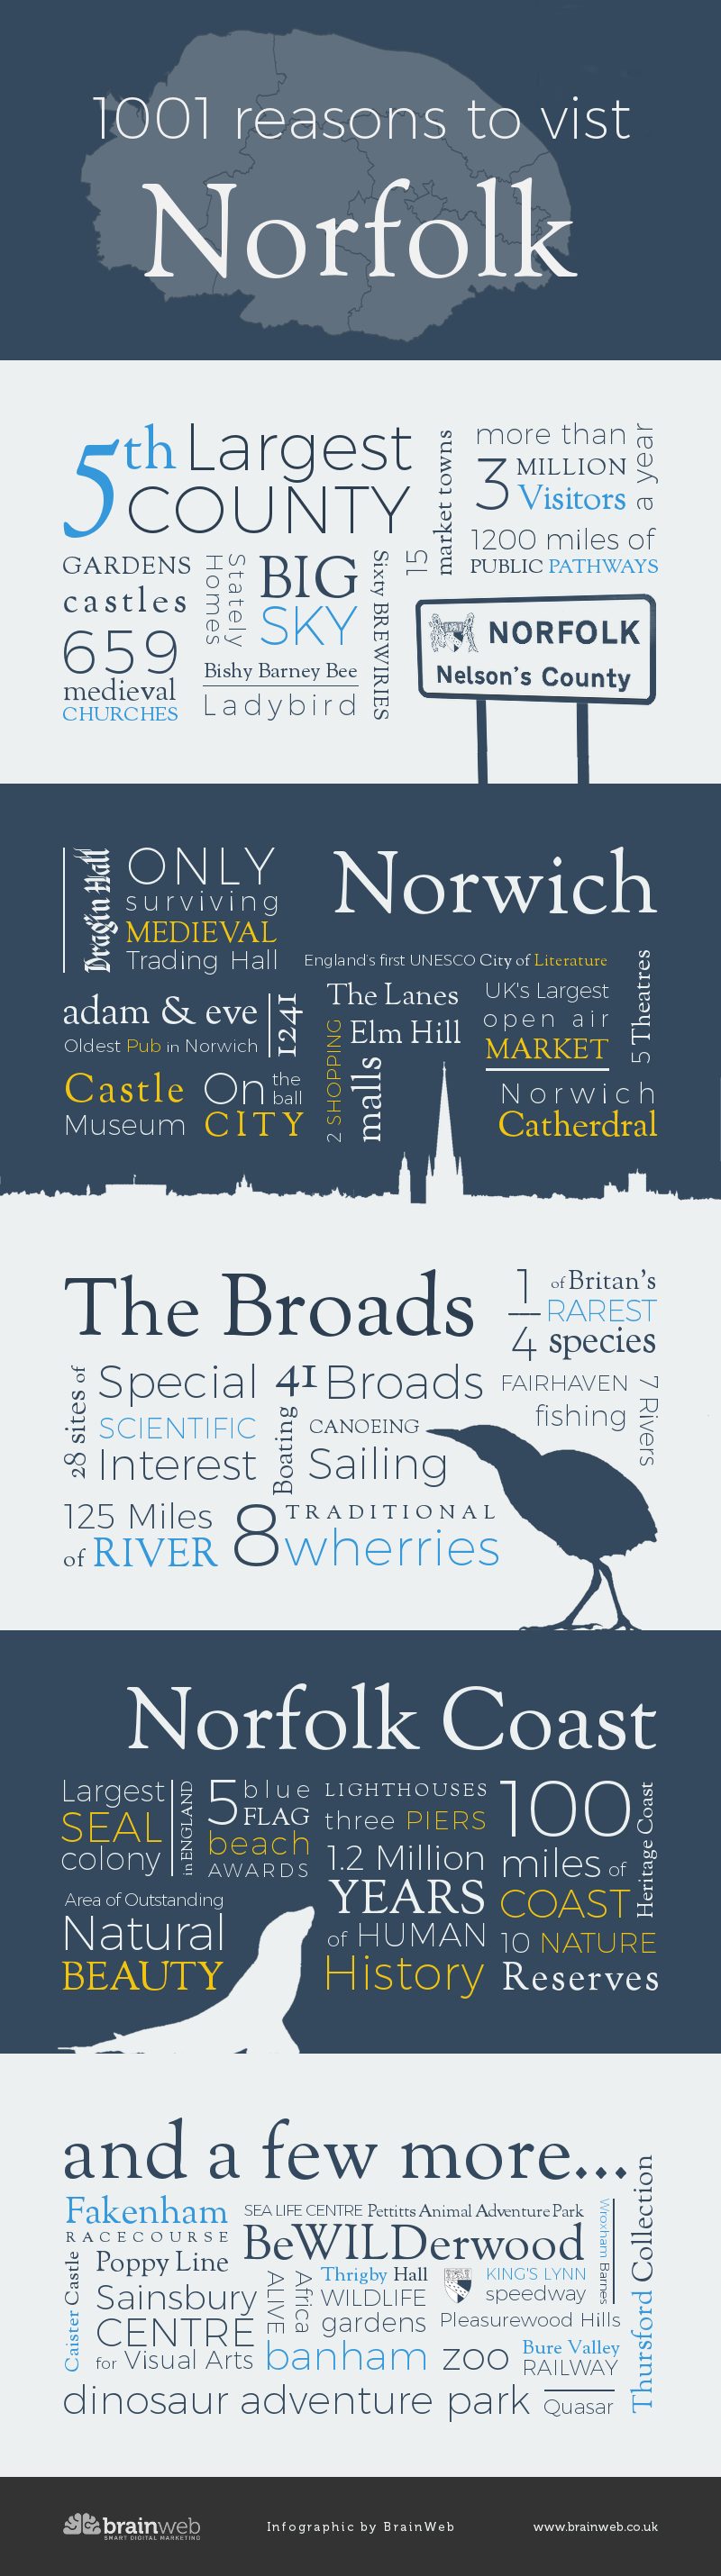 1001 reasons to visit Norfolk infographic